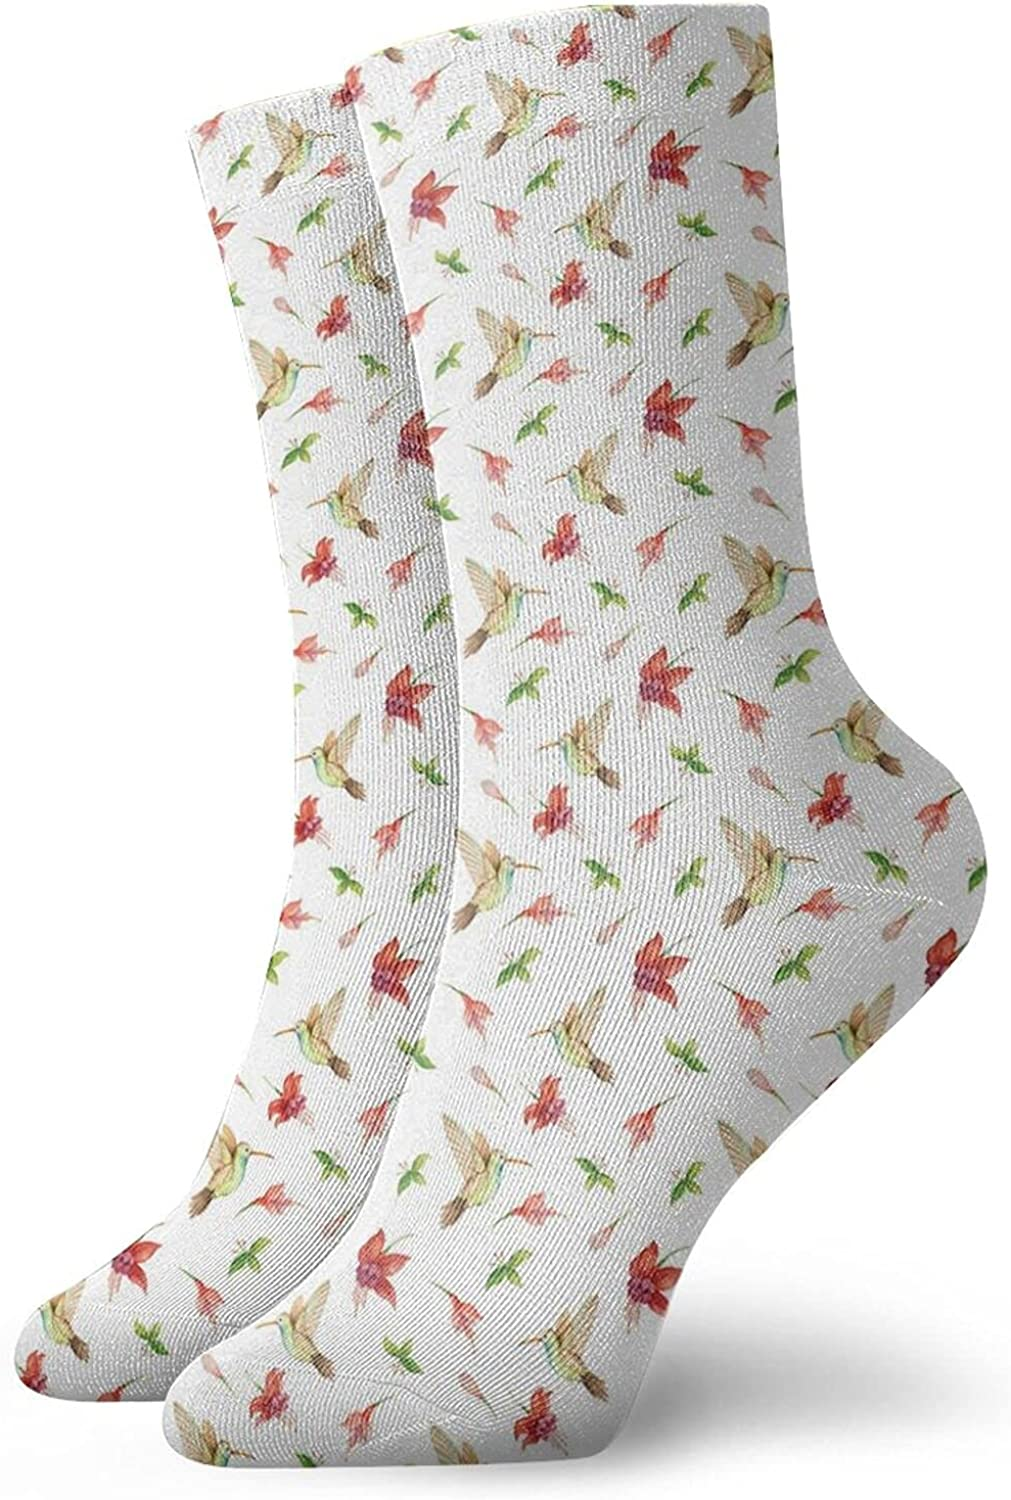 Compression High Socks-Artistic Pattern With Exotic Jungle Vegetation Flowers Buds And Flying Birds Best for Running,Athletic,Hiking,Travel,Flight